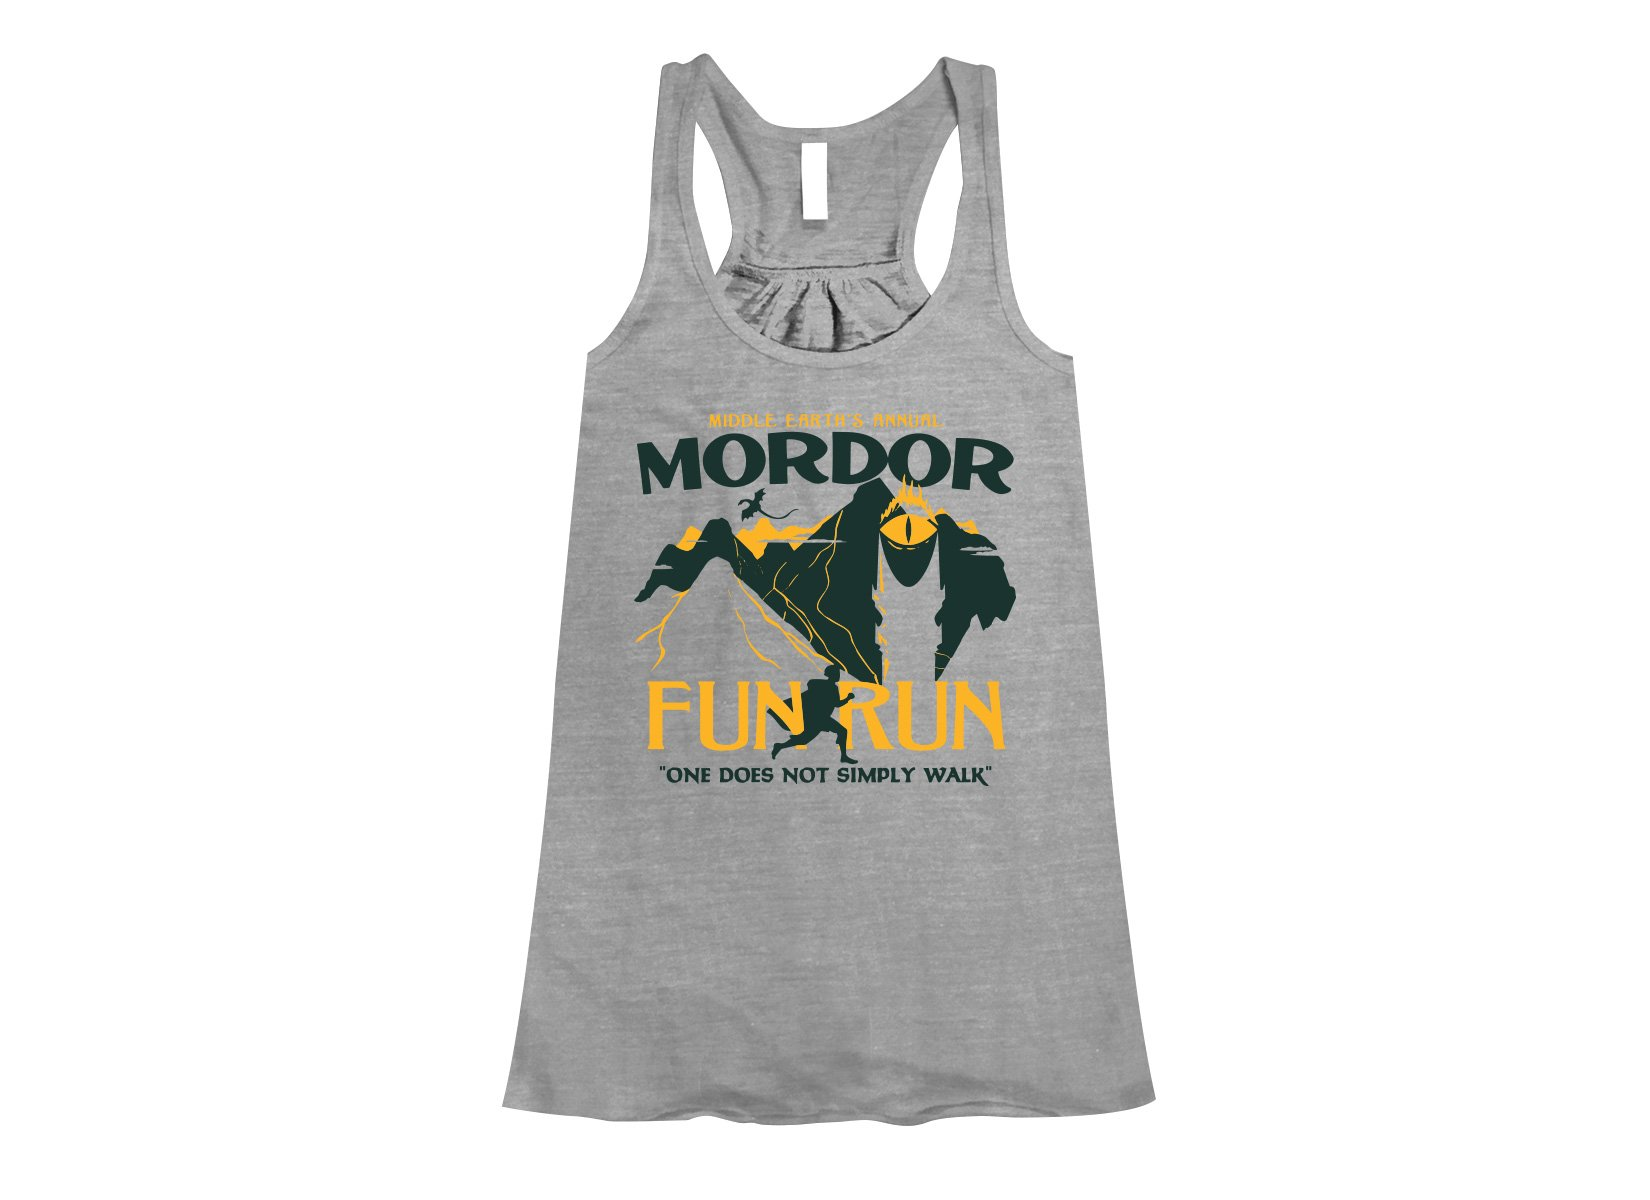 Mordor Fun Run on Womens Tanks T-Shirt